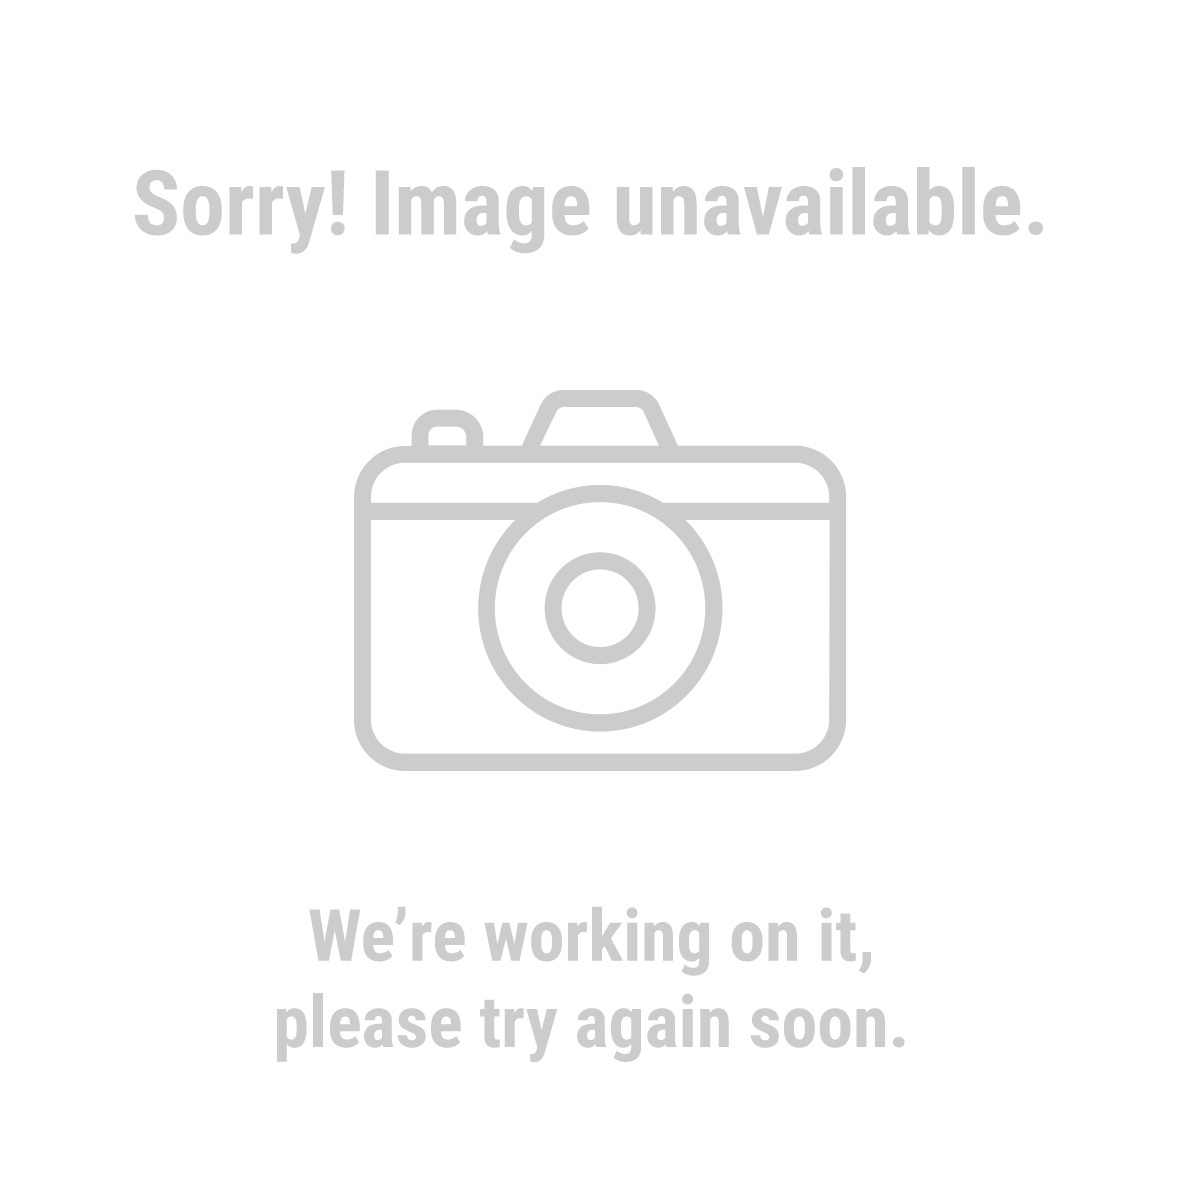 "Pittsburgh 93884 24"" Digital Laser Level with Angle Finder"